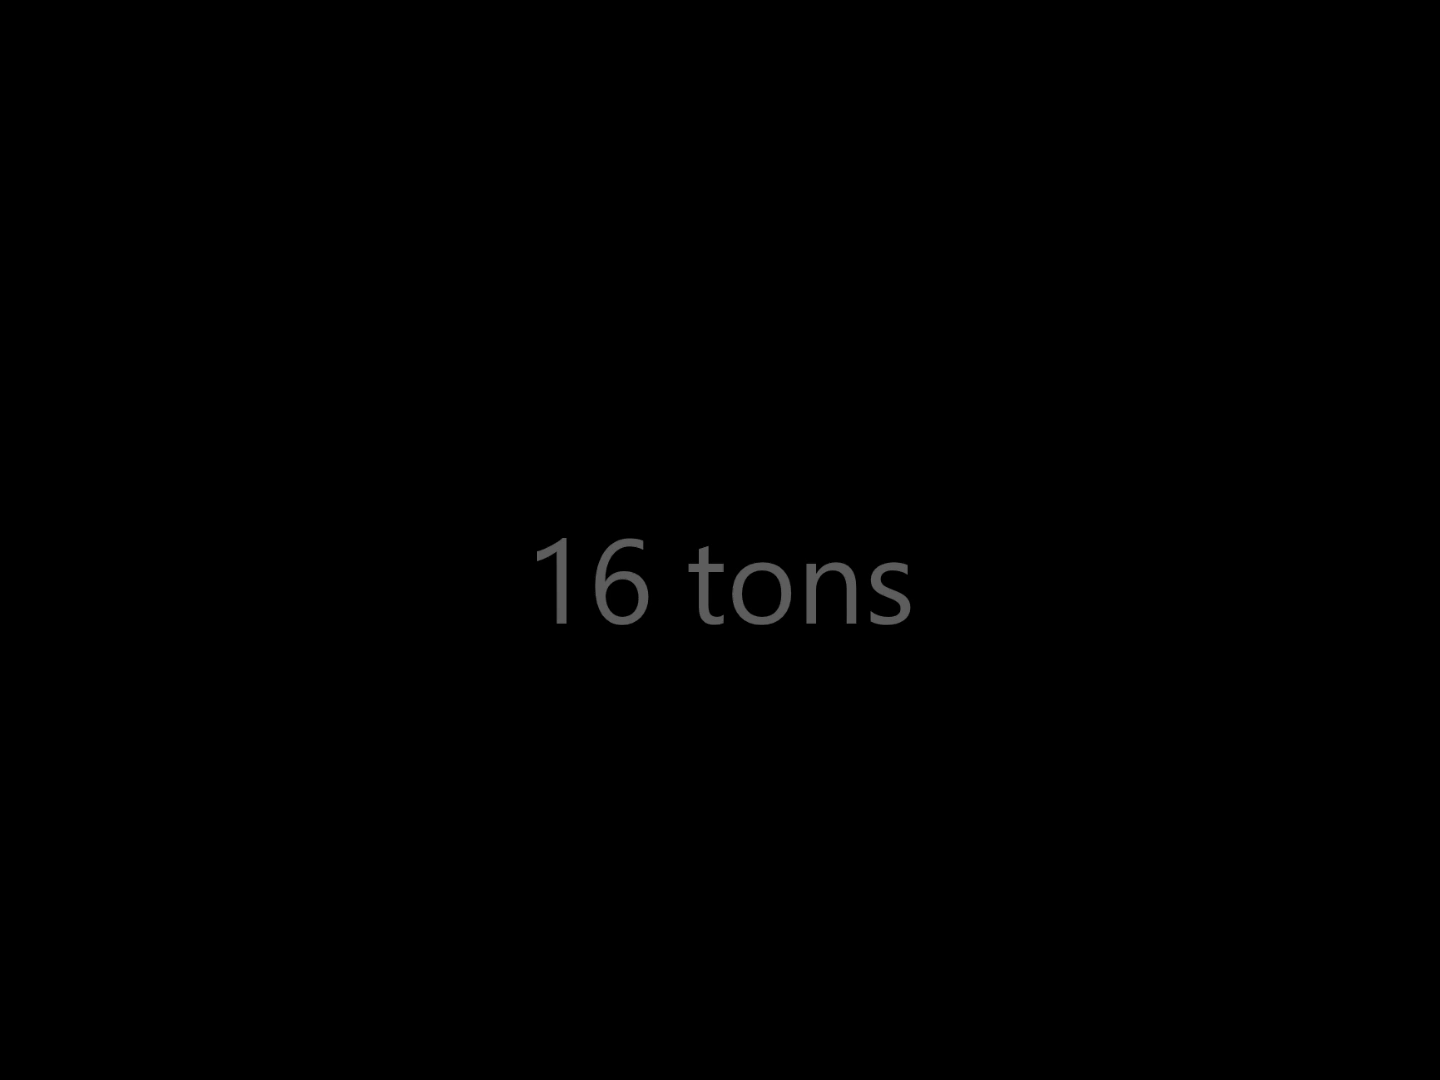 16 tons